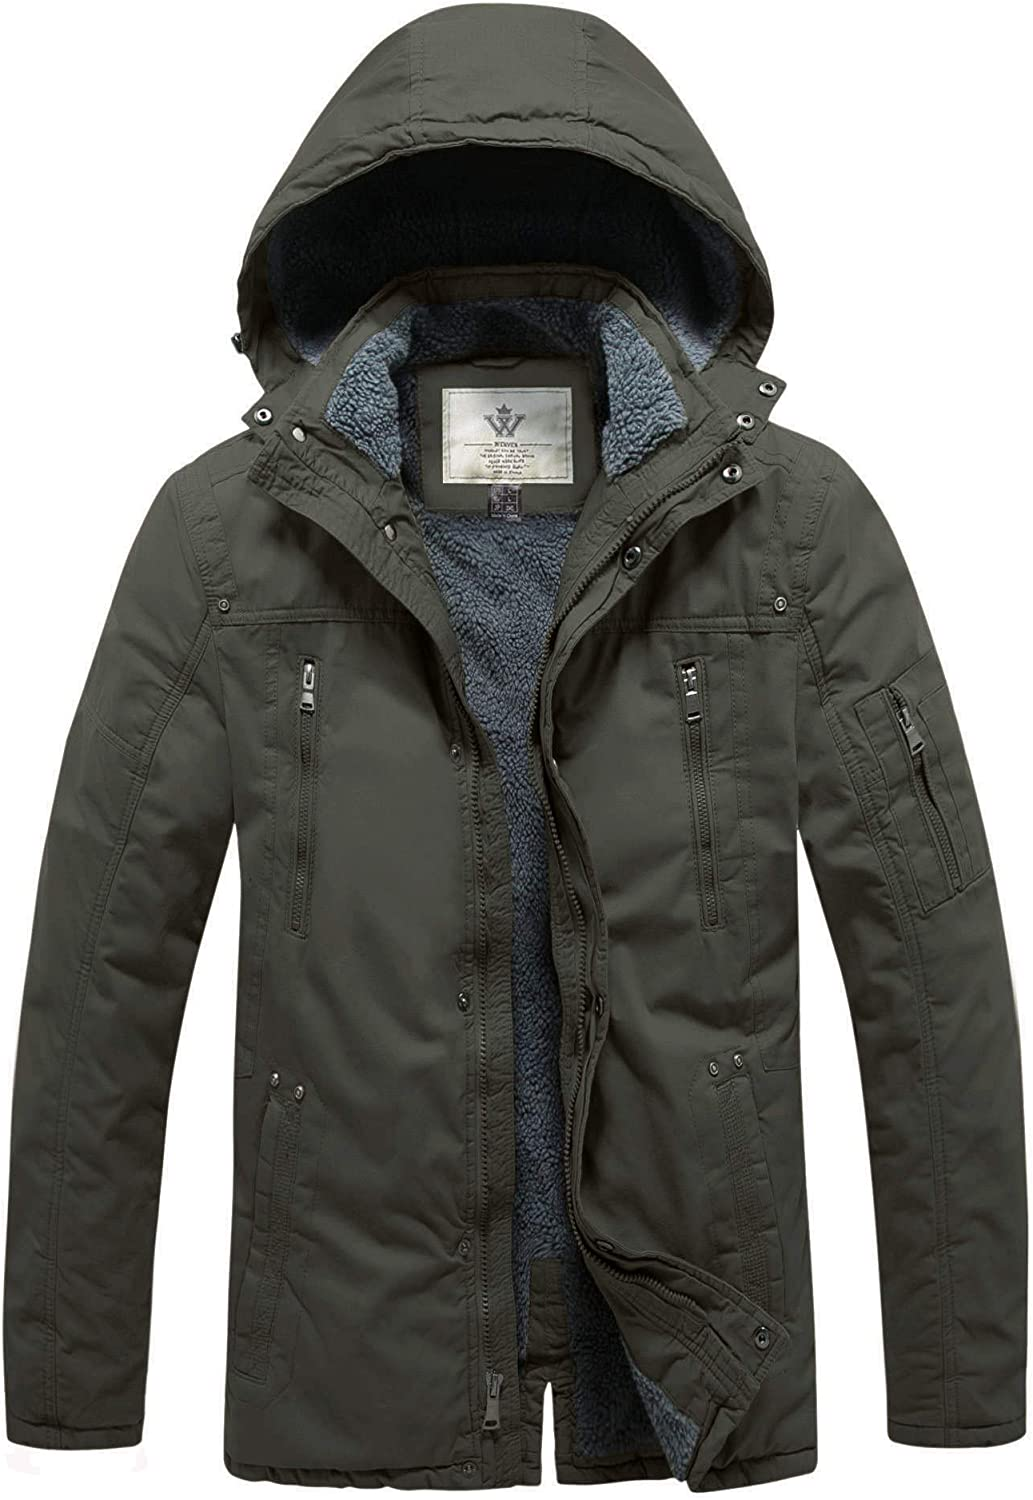 WenVen Men's Winter Insulated Sherpa Lined Parka Jacket with Detachable Hood